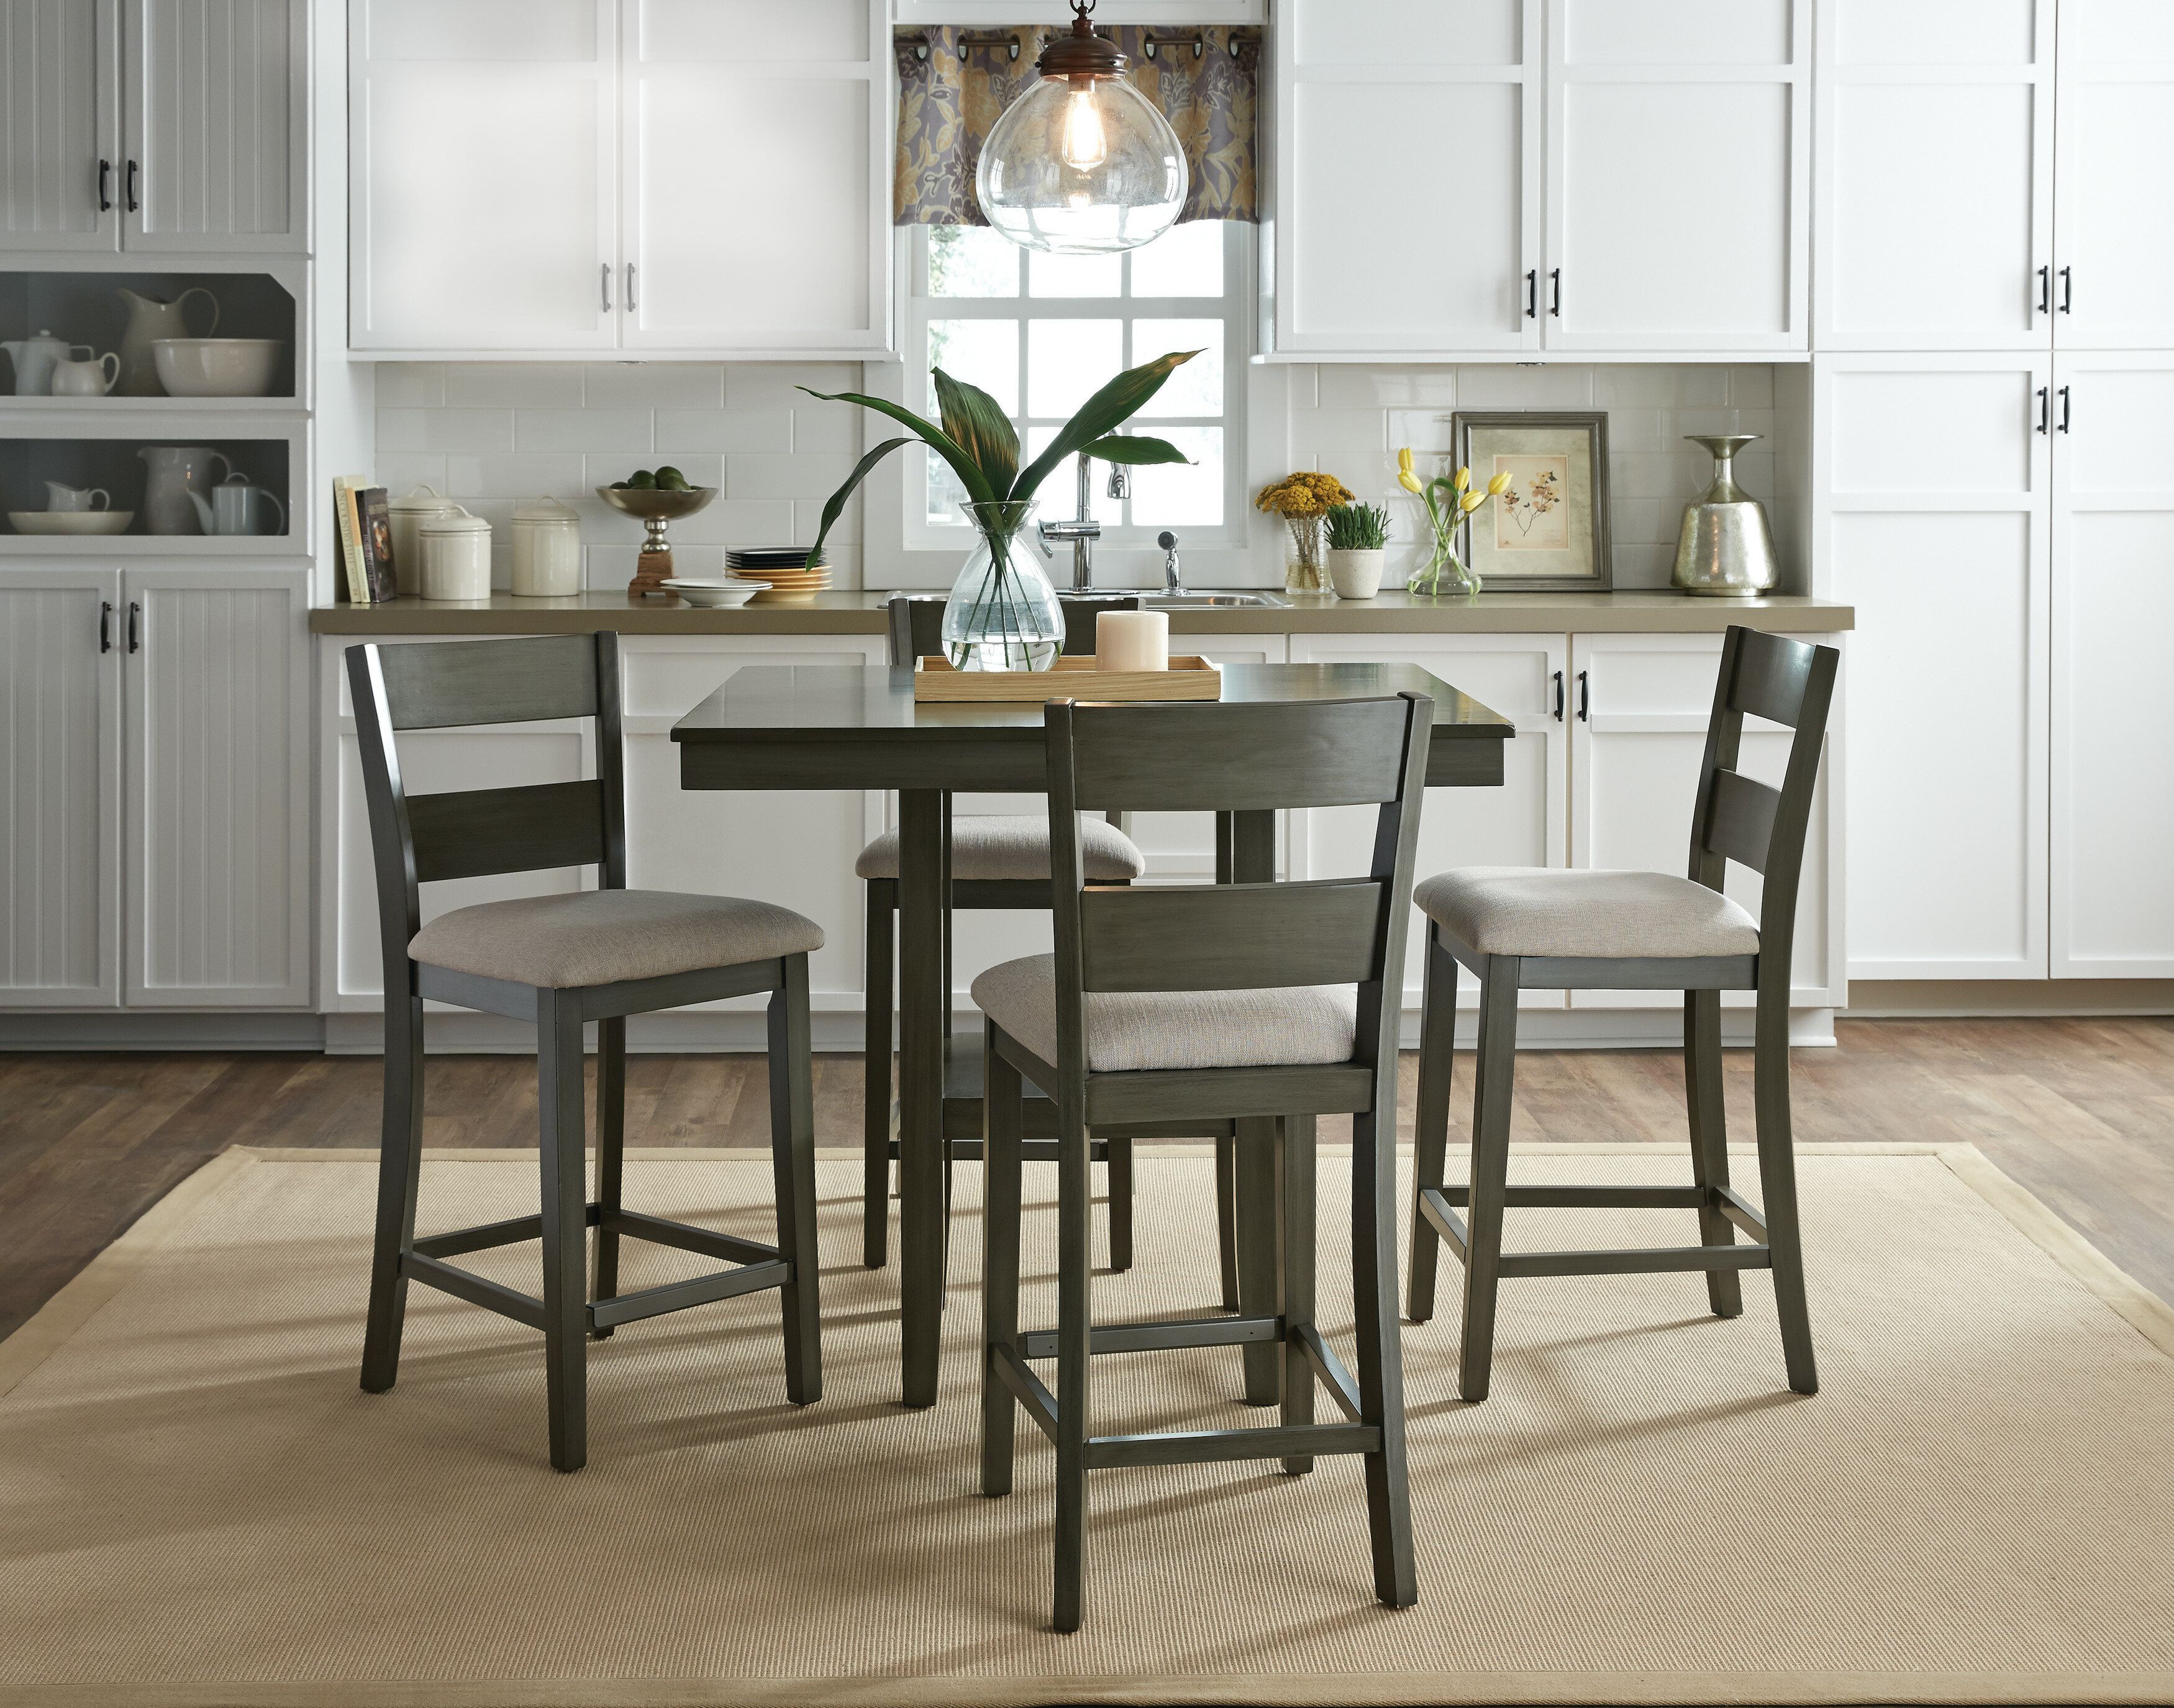 Square Gray Dining Table Interior Kitchen Contemporary